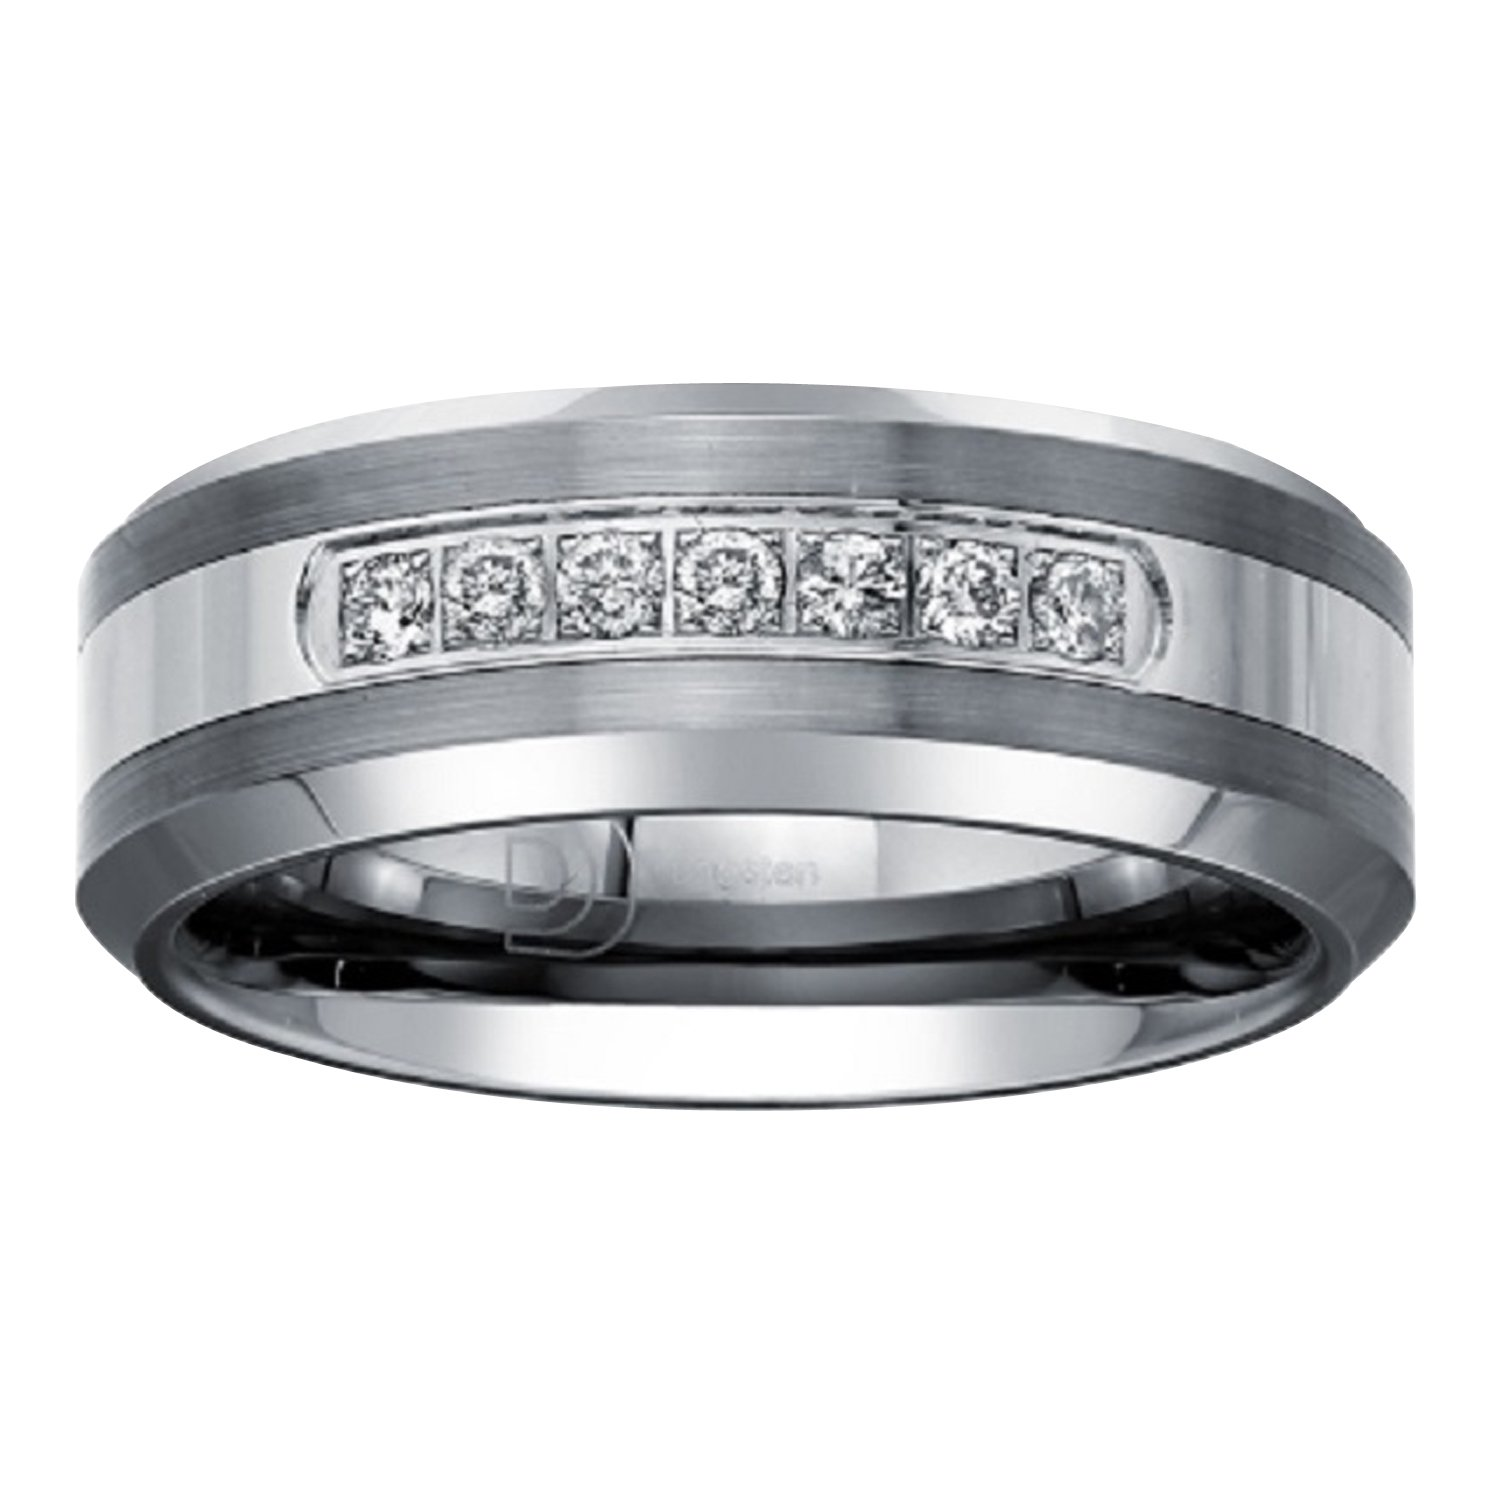 rings jaredstore for zm him hover band zoom triton wedding jared jar mv en titanium to